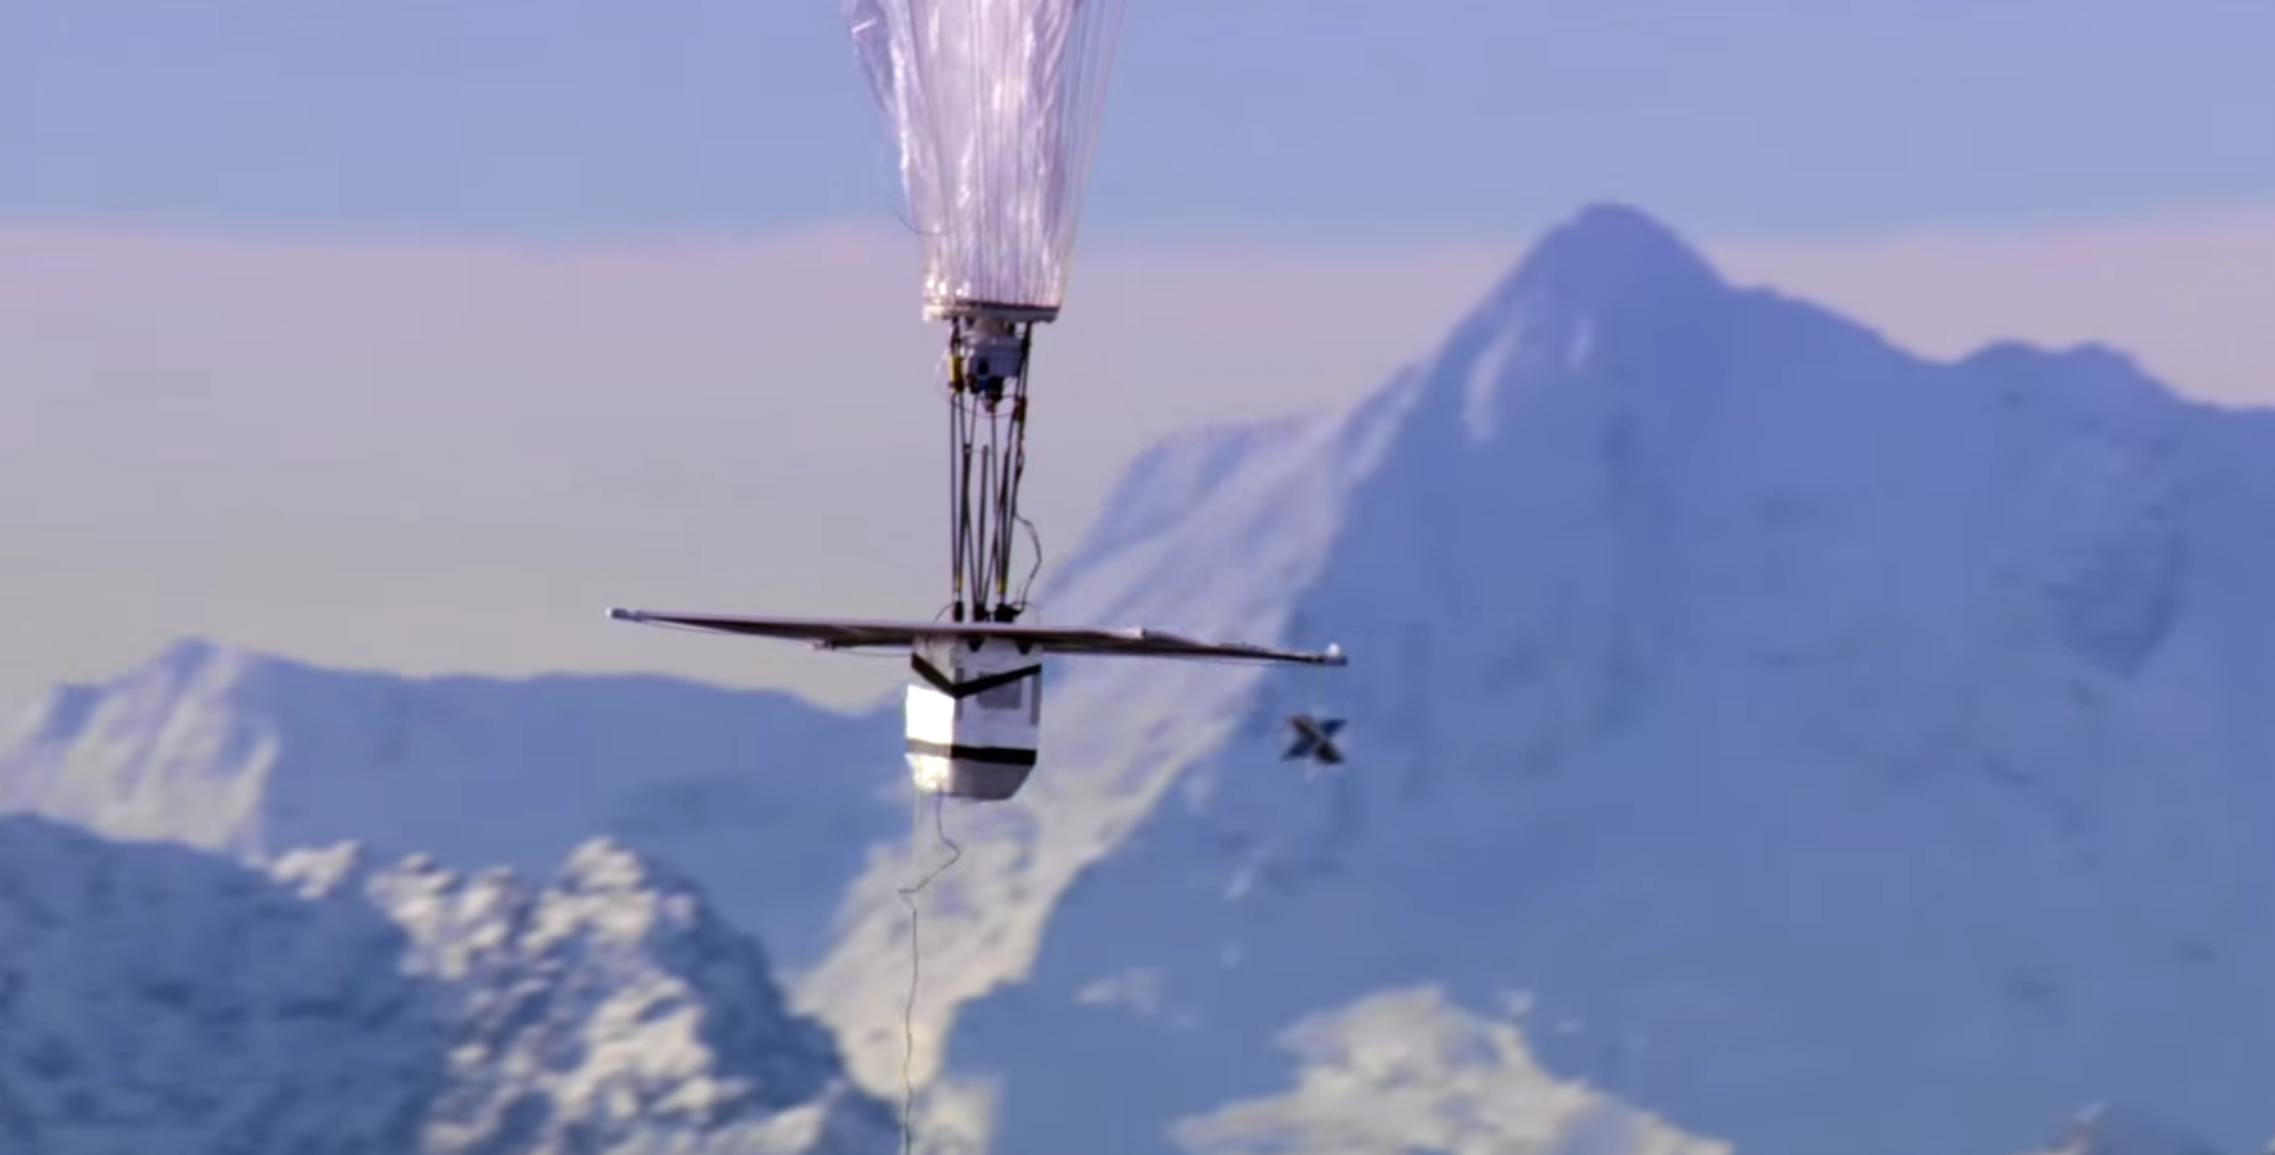 Project Loon Launches Balloon Based Internet Into The Stratosphere Green Prophet